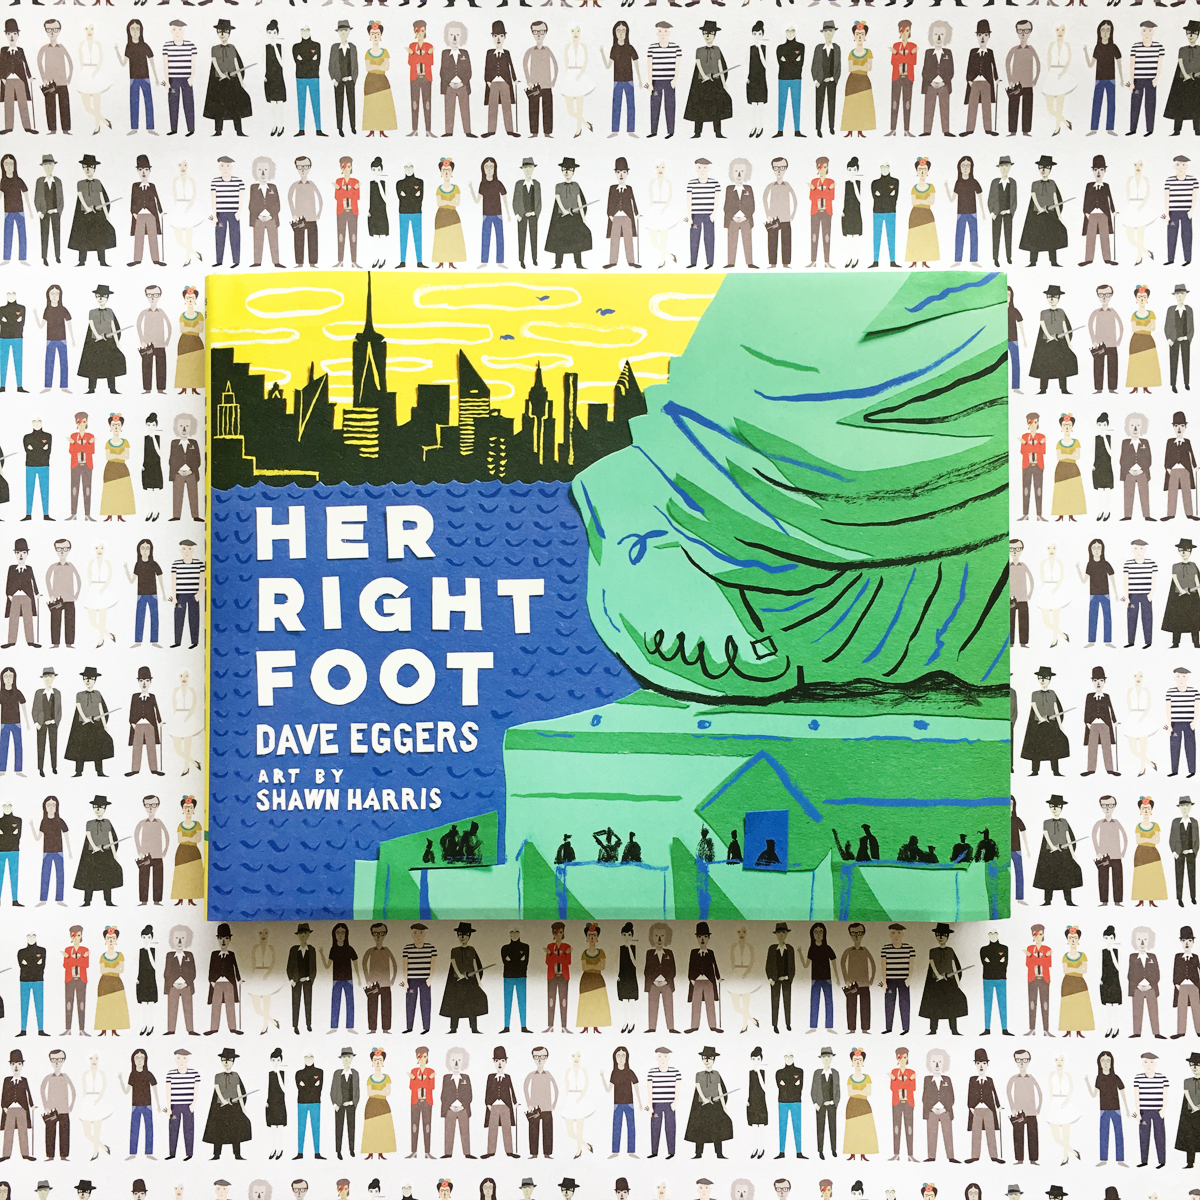 Her Right Foot | Books For Diversity